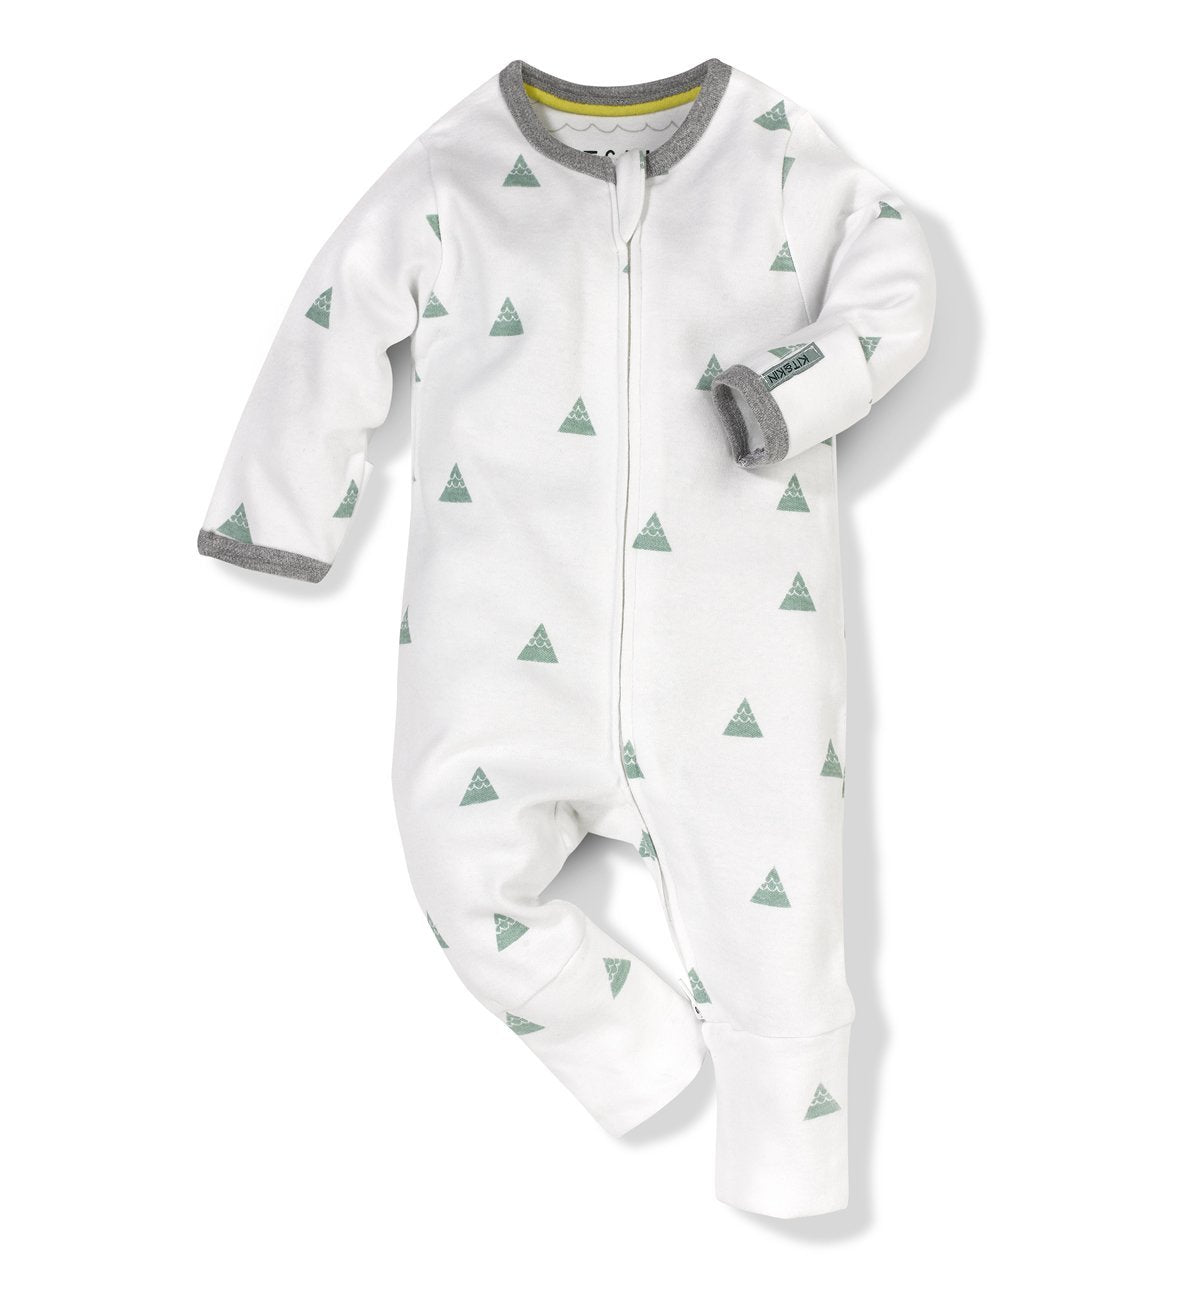 Kit & Kin organic cotton mountain All-in-one